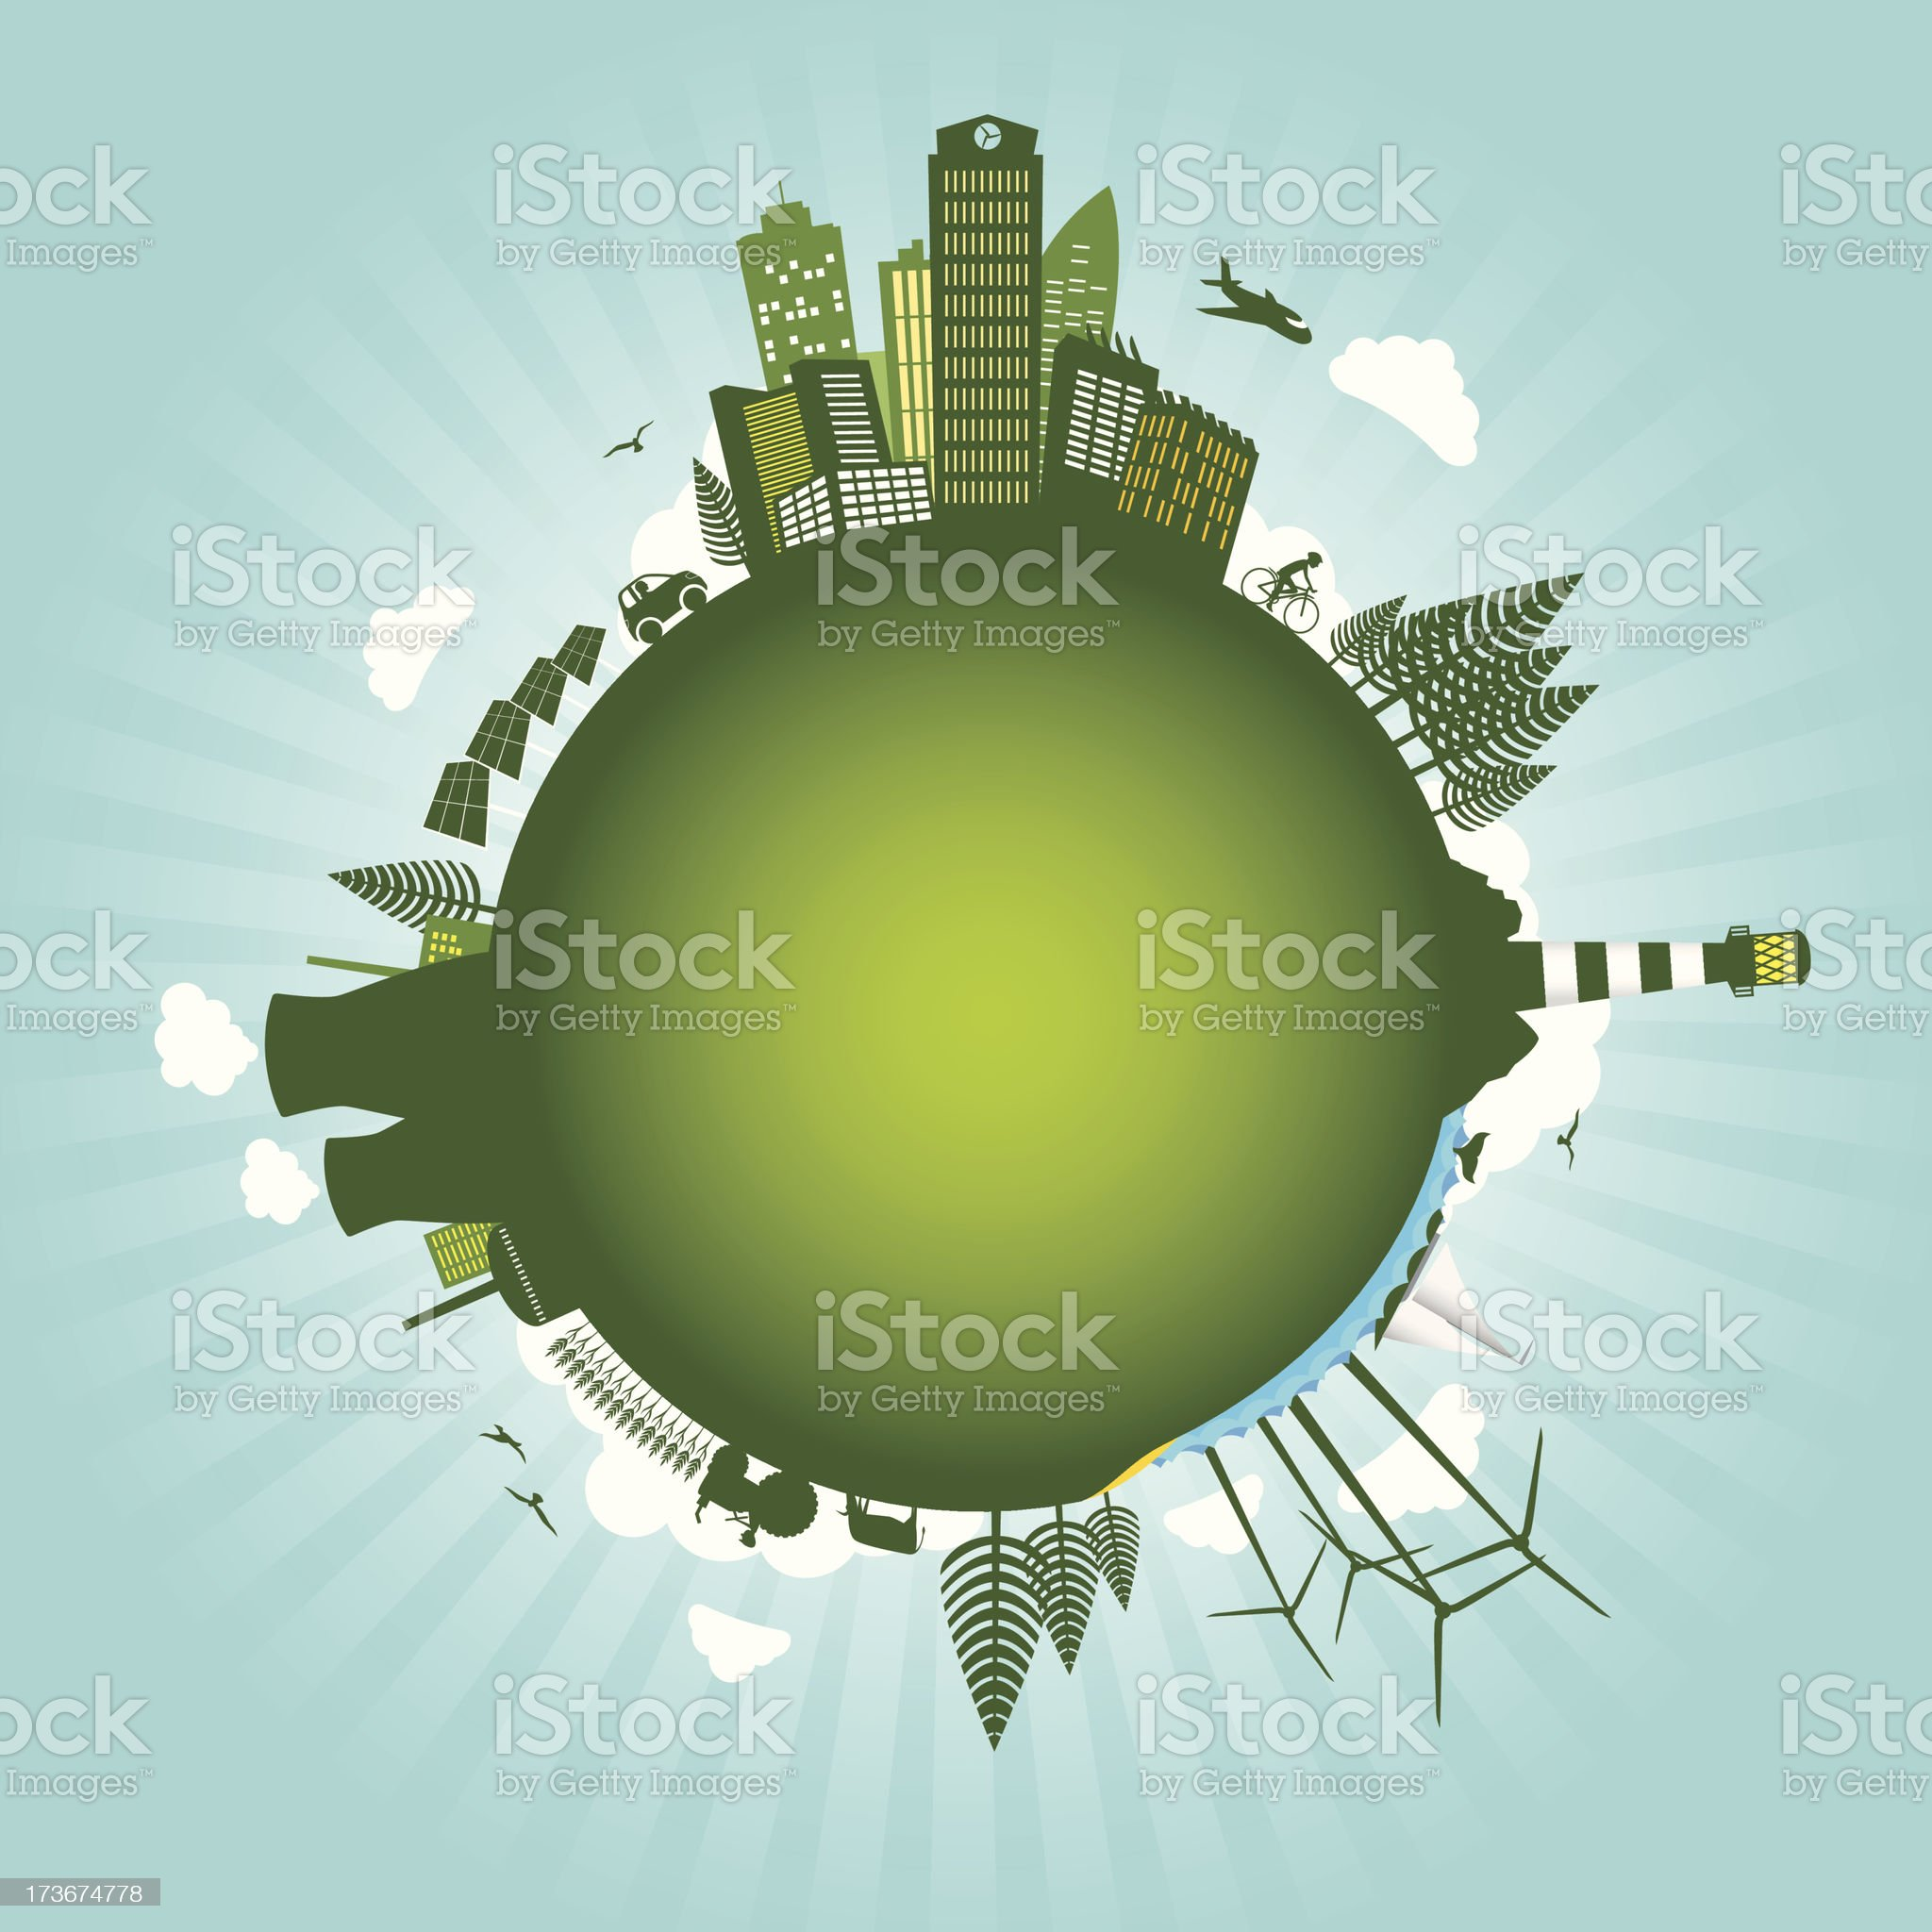 Green environment sustainable energy world concept royalty-free stock vector art